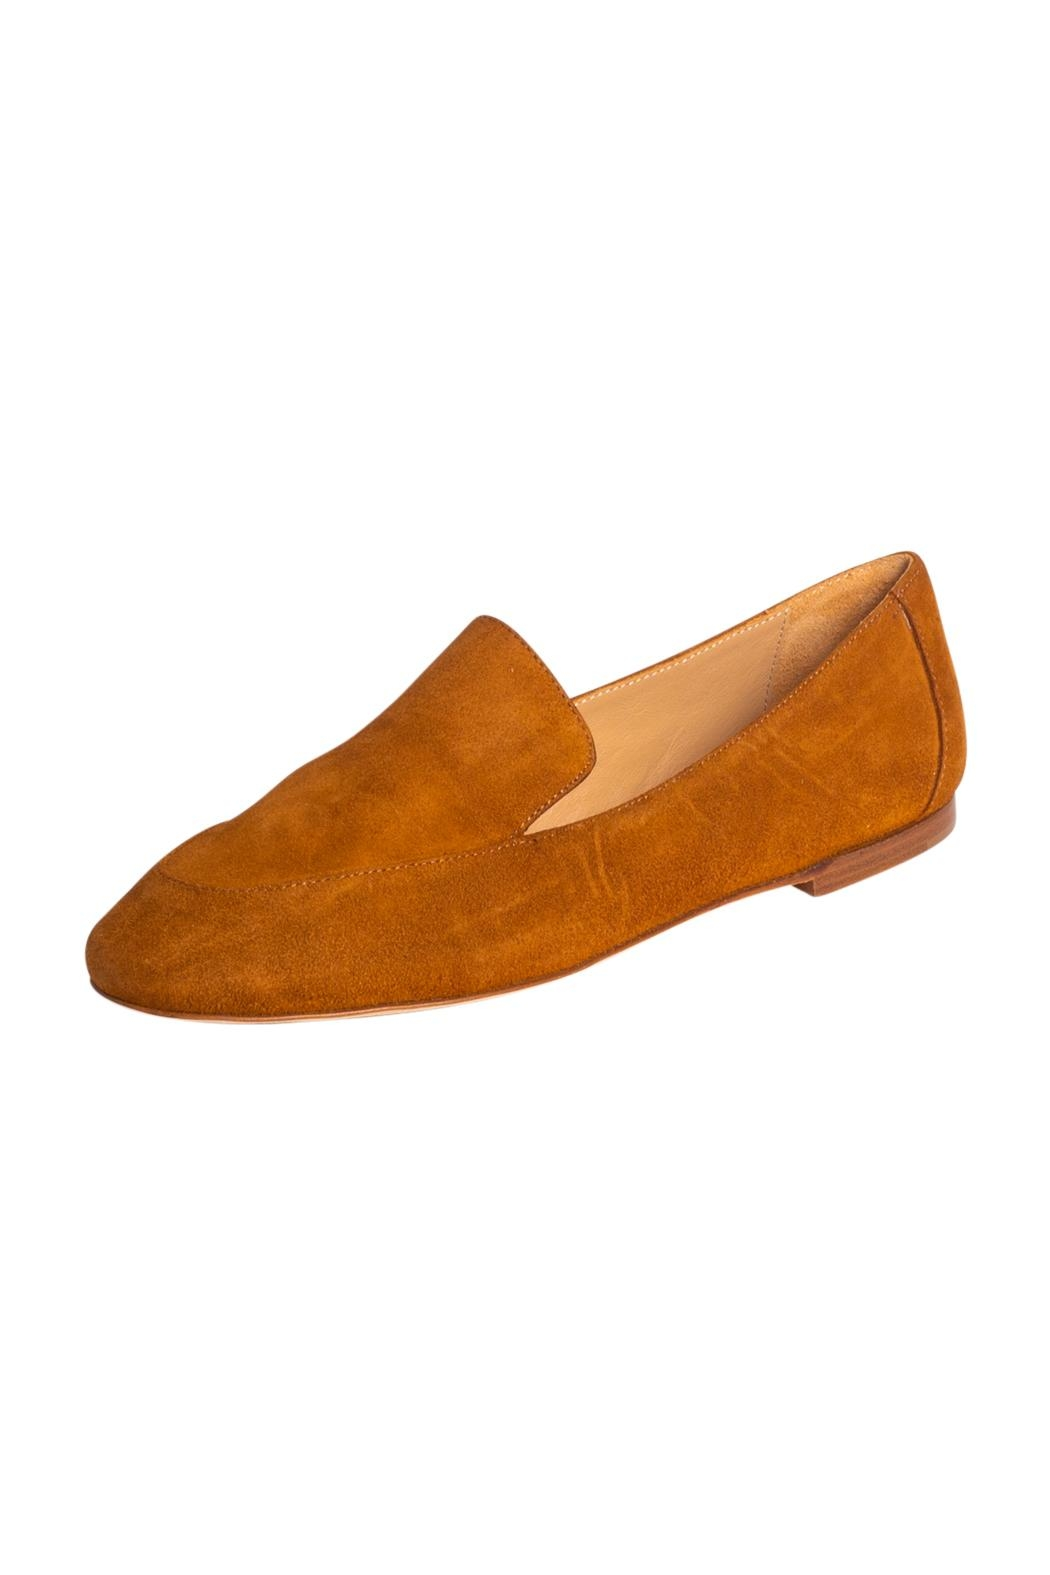 Pascucci Tan Suede Loafers - Front Full Image